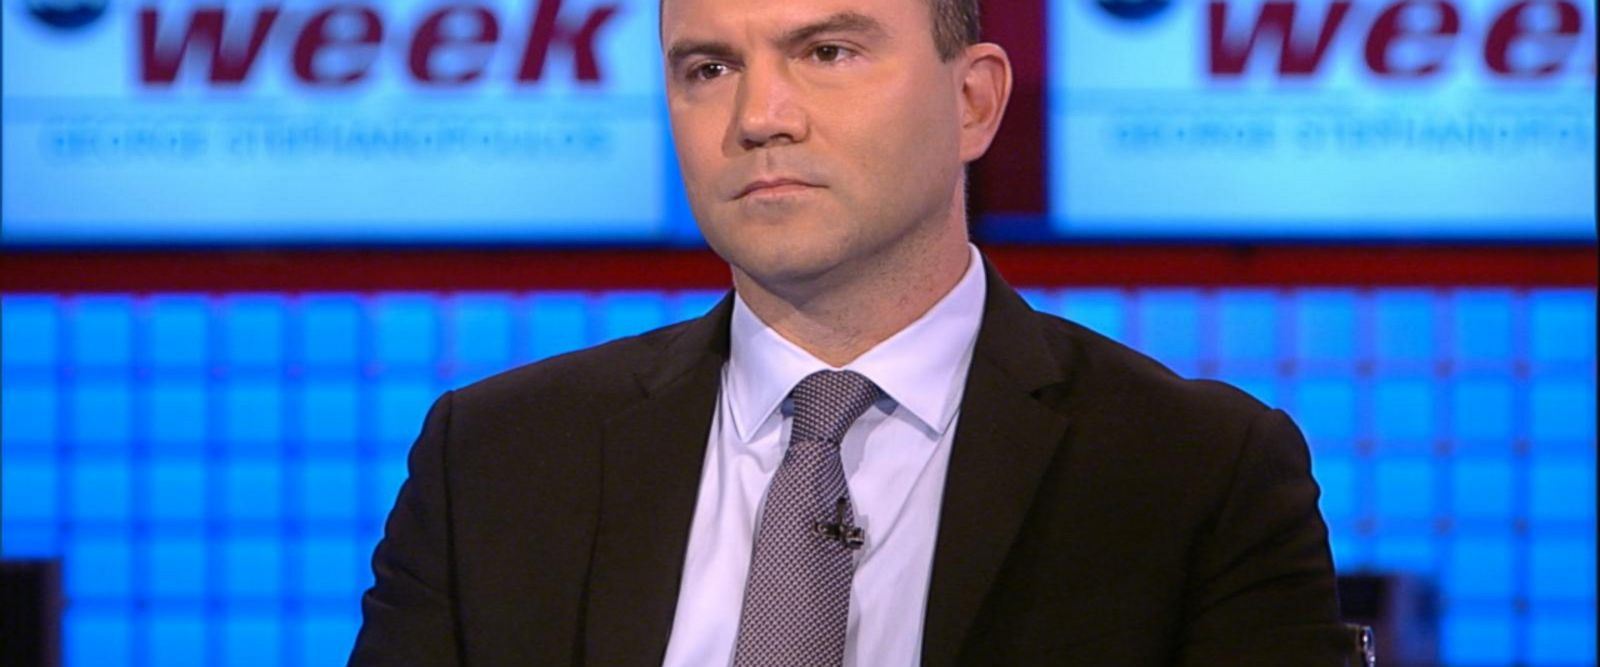 VIDEO: Ben Rhodes slams President Trump on North Korea: 'We should not be manufacturing a crisis'